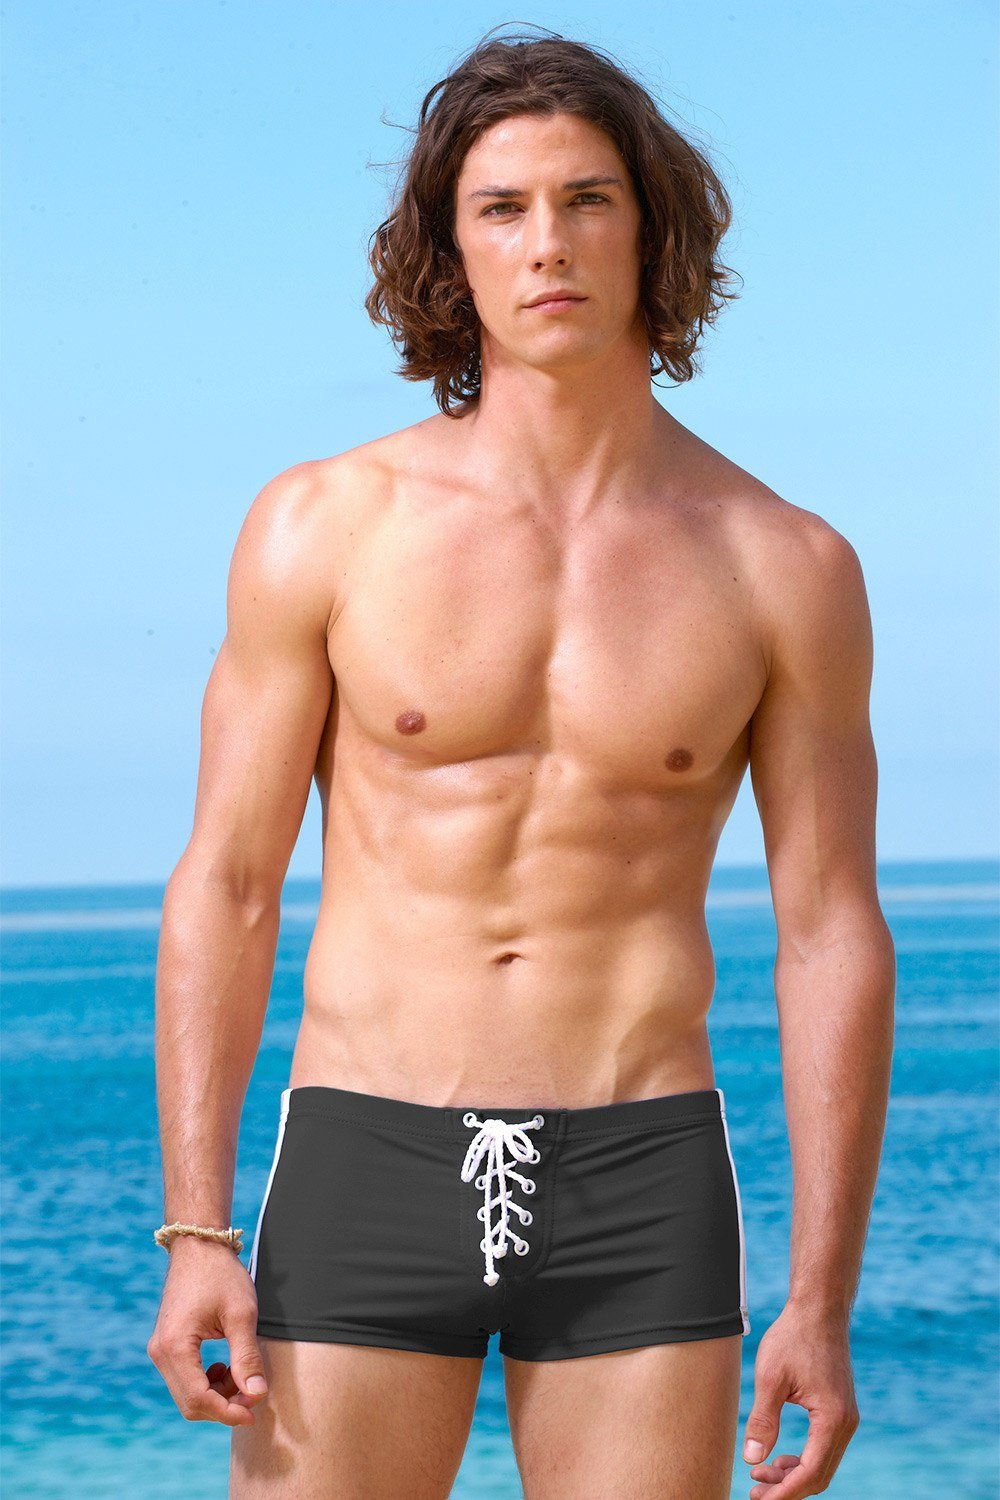 Sauvage Swimwear, Designer Swimwear from San Diego, CA made in usaFootball Lace-Up, Small - 30 / Black/Wht, Mens Swim, Men's Swim, Sauvage - 1